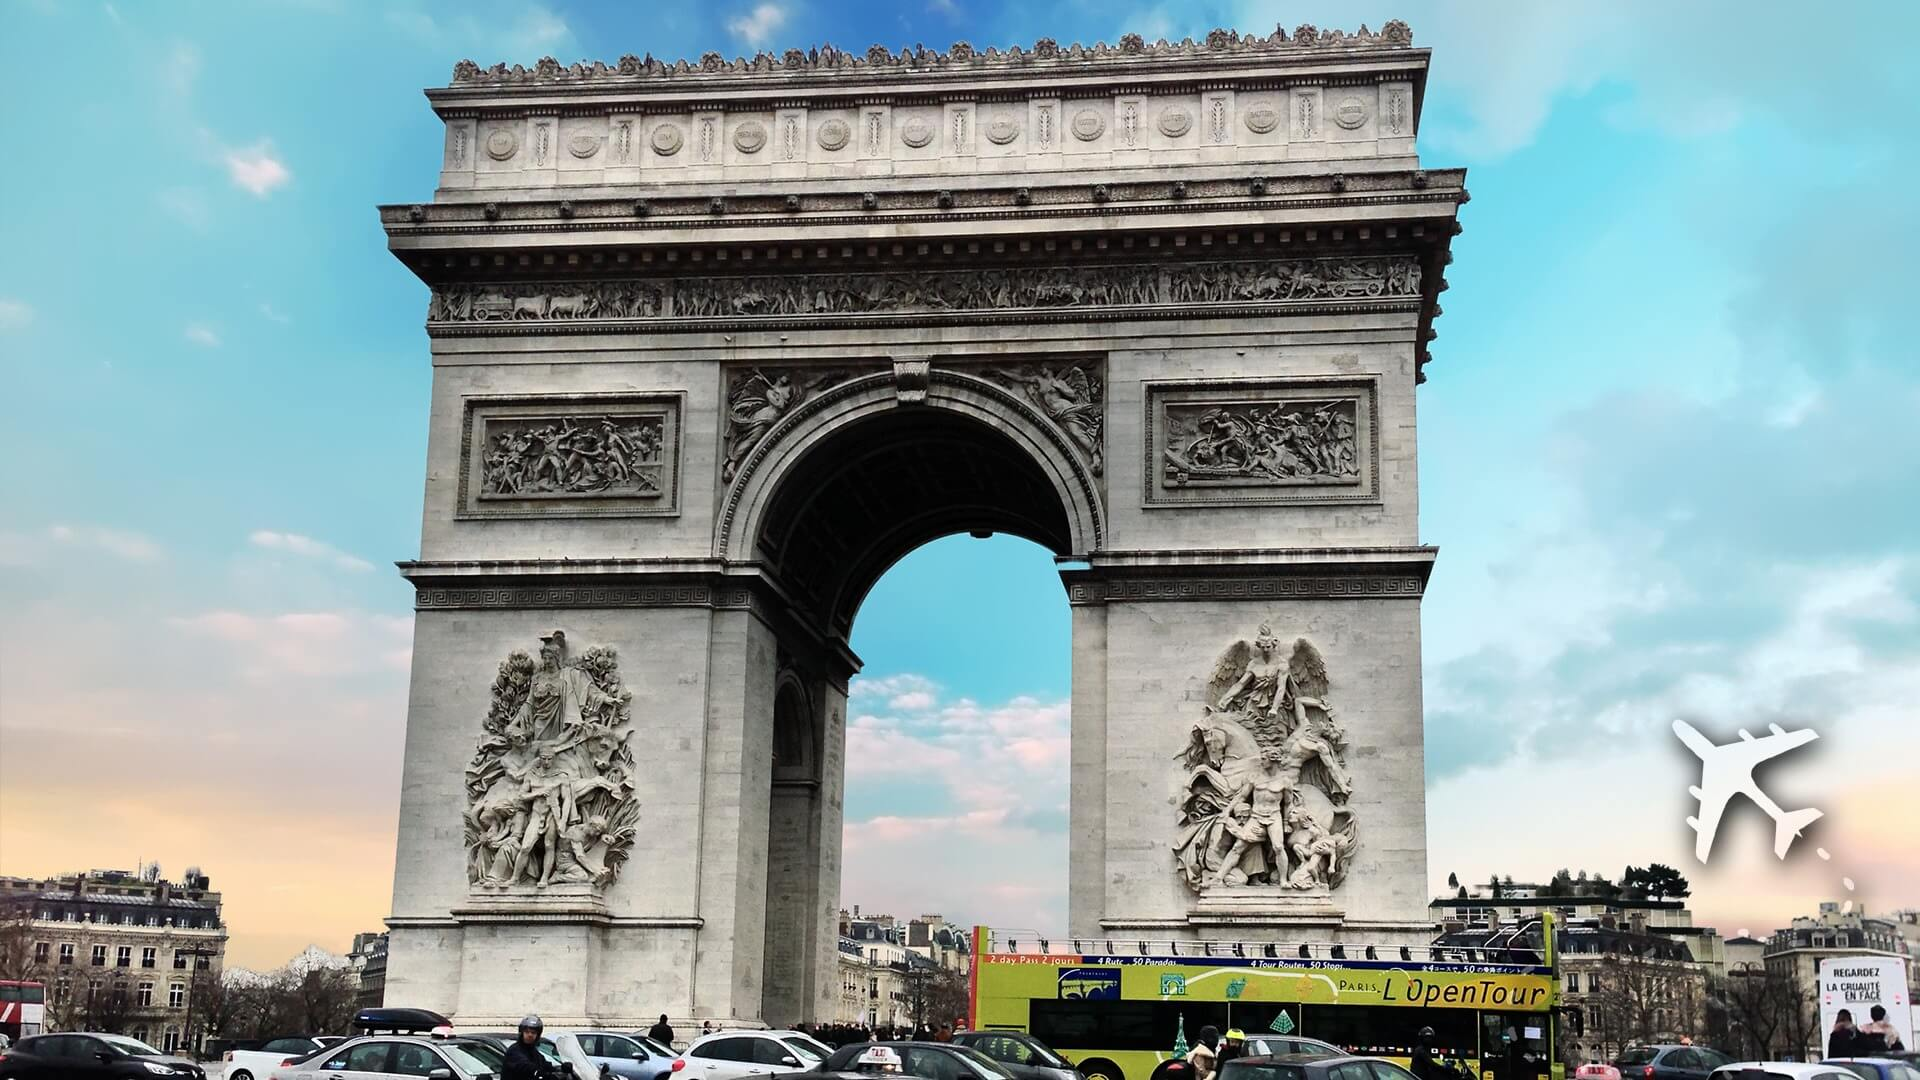 France's Arc de Triomphe